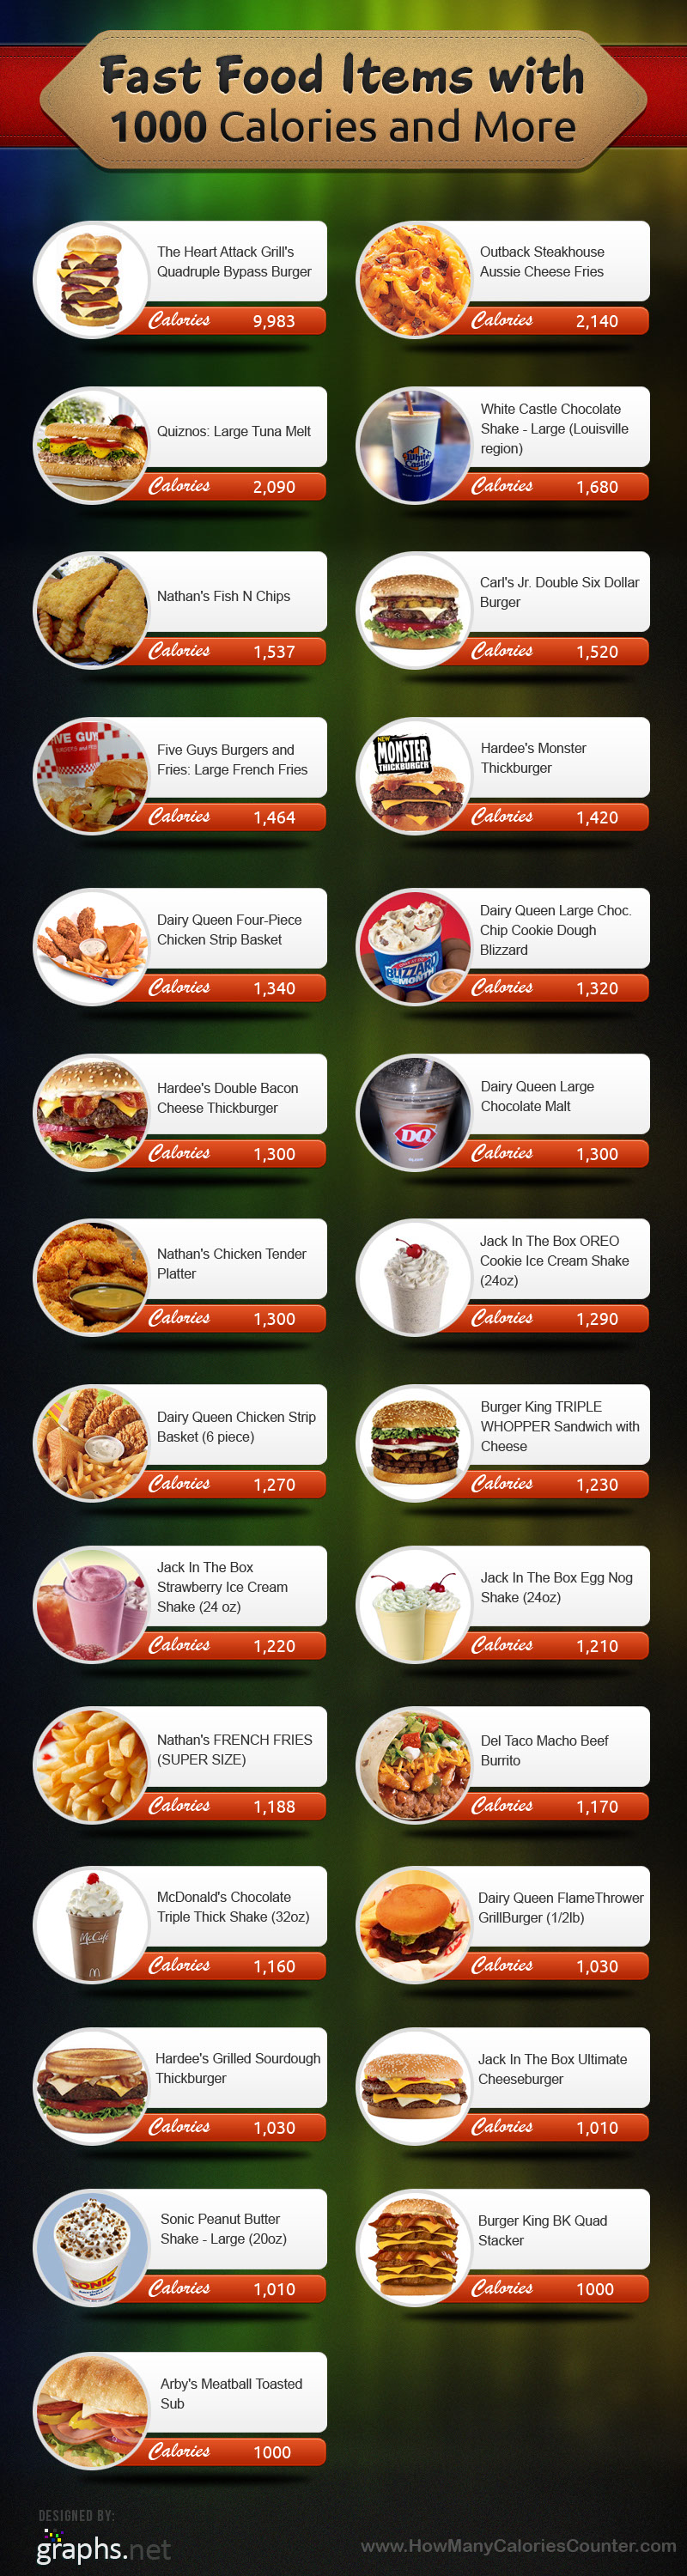 Fast Food Calories Chart-Infographic